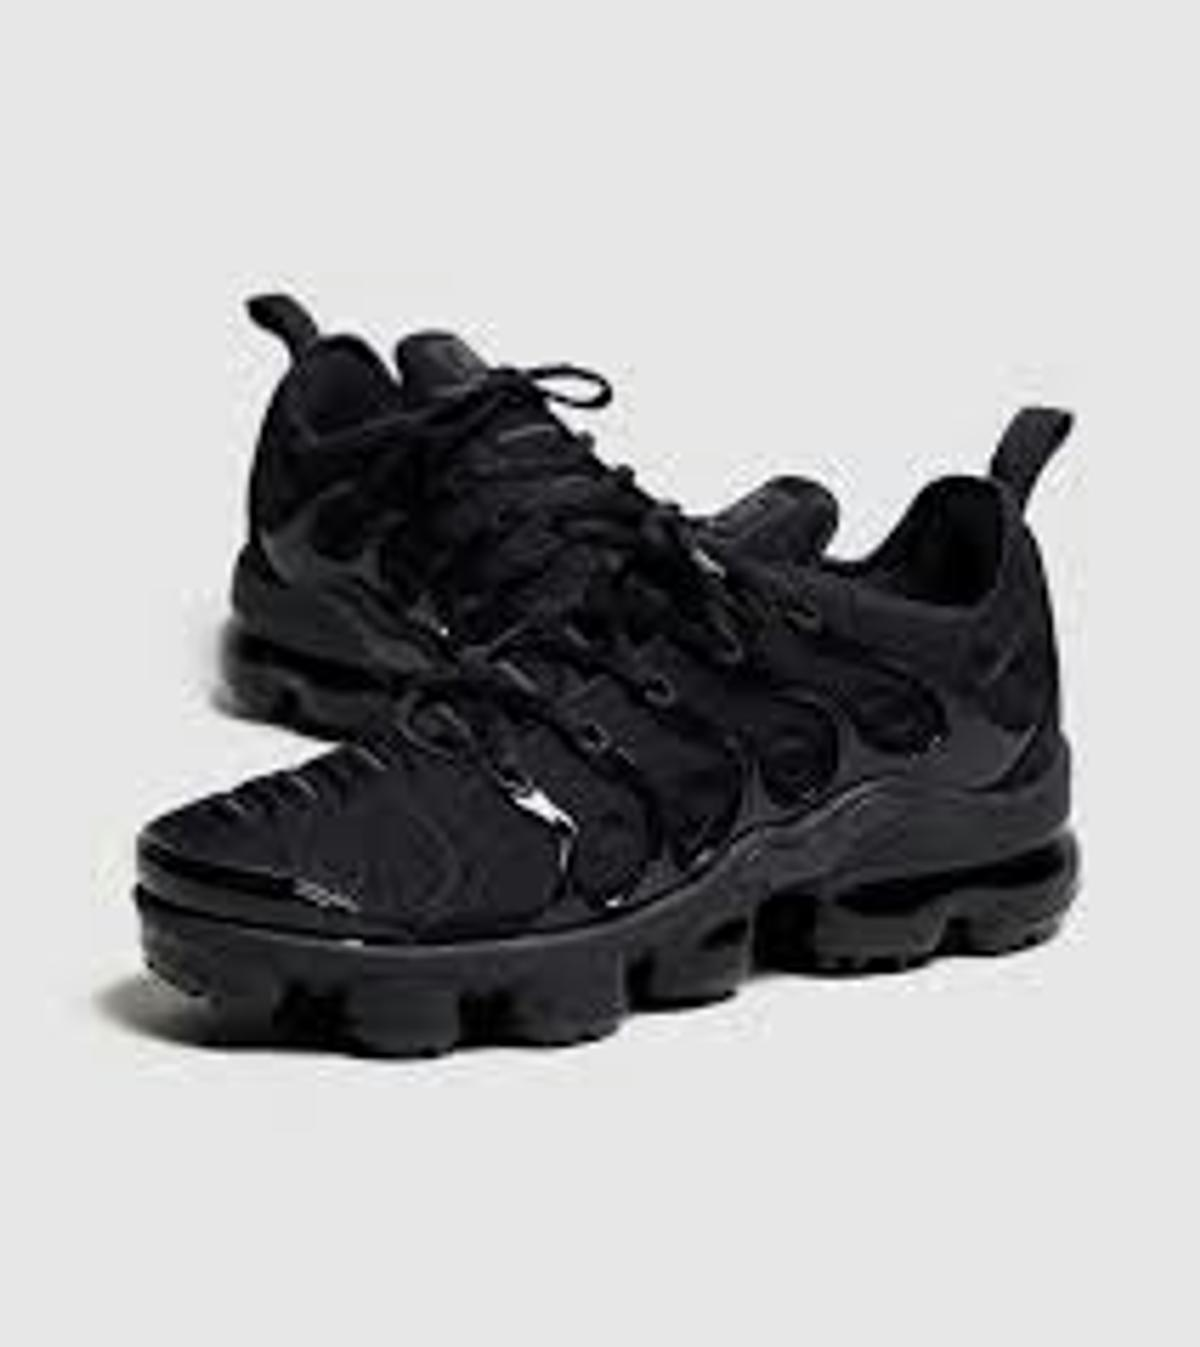 finest selection a27e9 16dca NEW NIKE AIR VAPORMAX PLUS TRAINERS SIZE 8.5 in BD8 Bradford ...